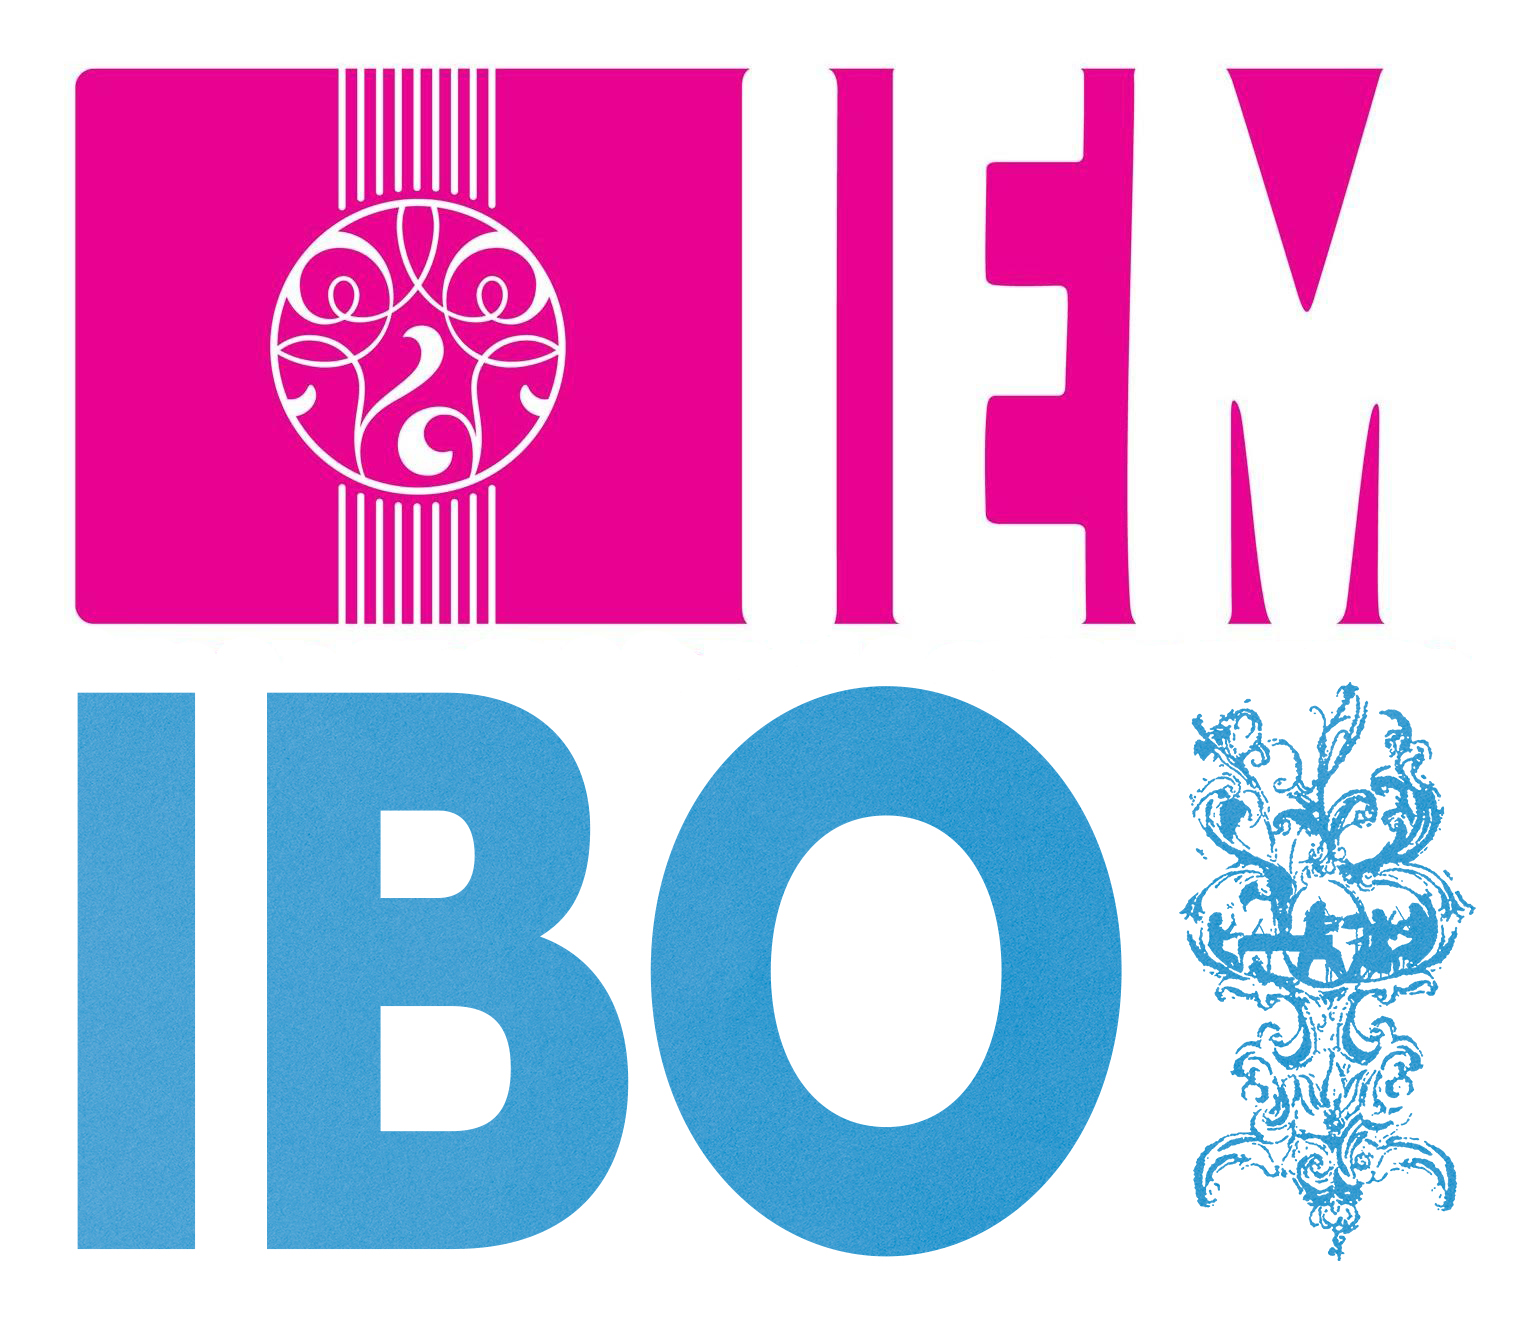 iem-ibo-competition-logo-color.jpg